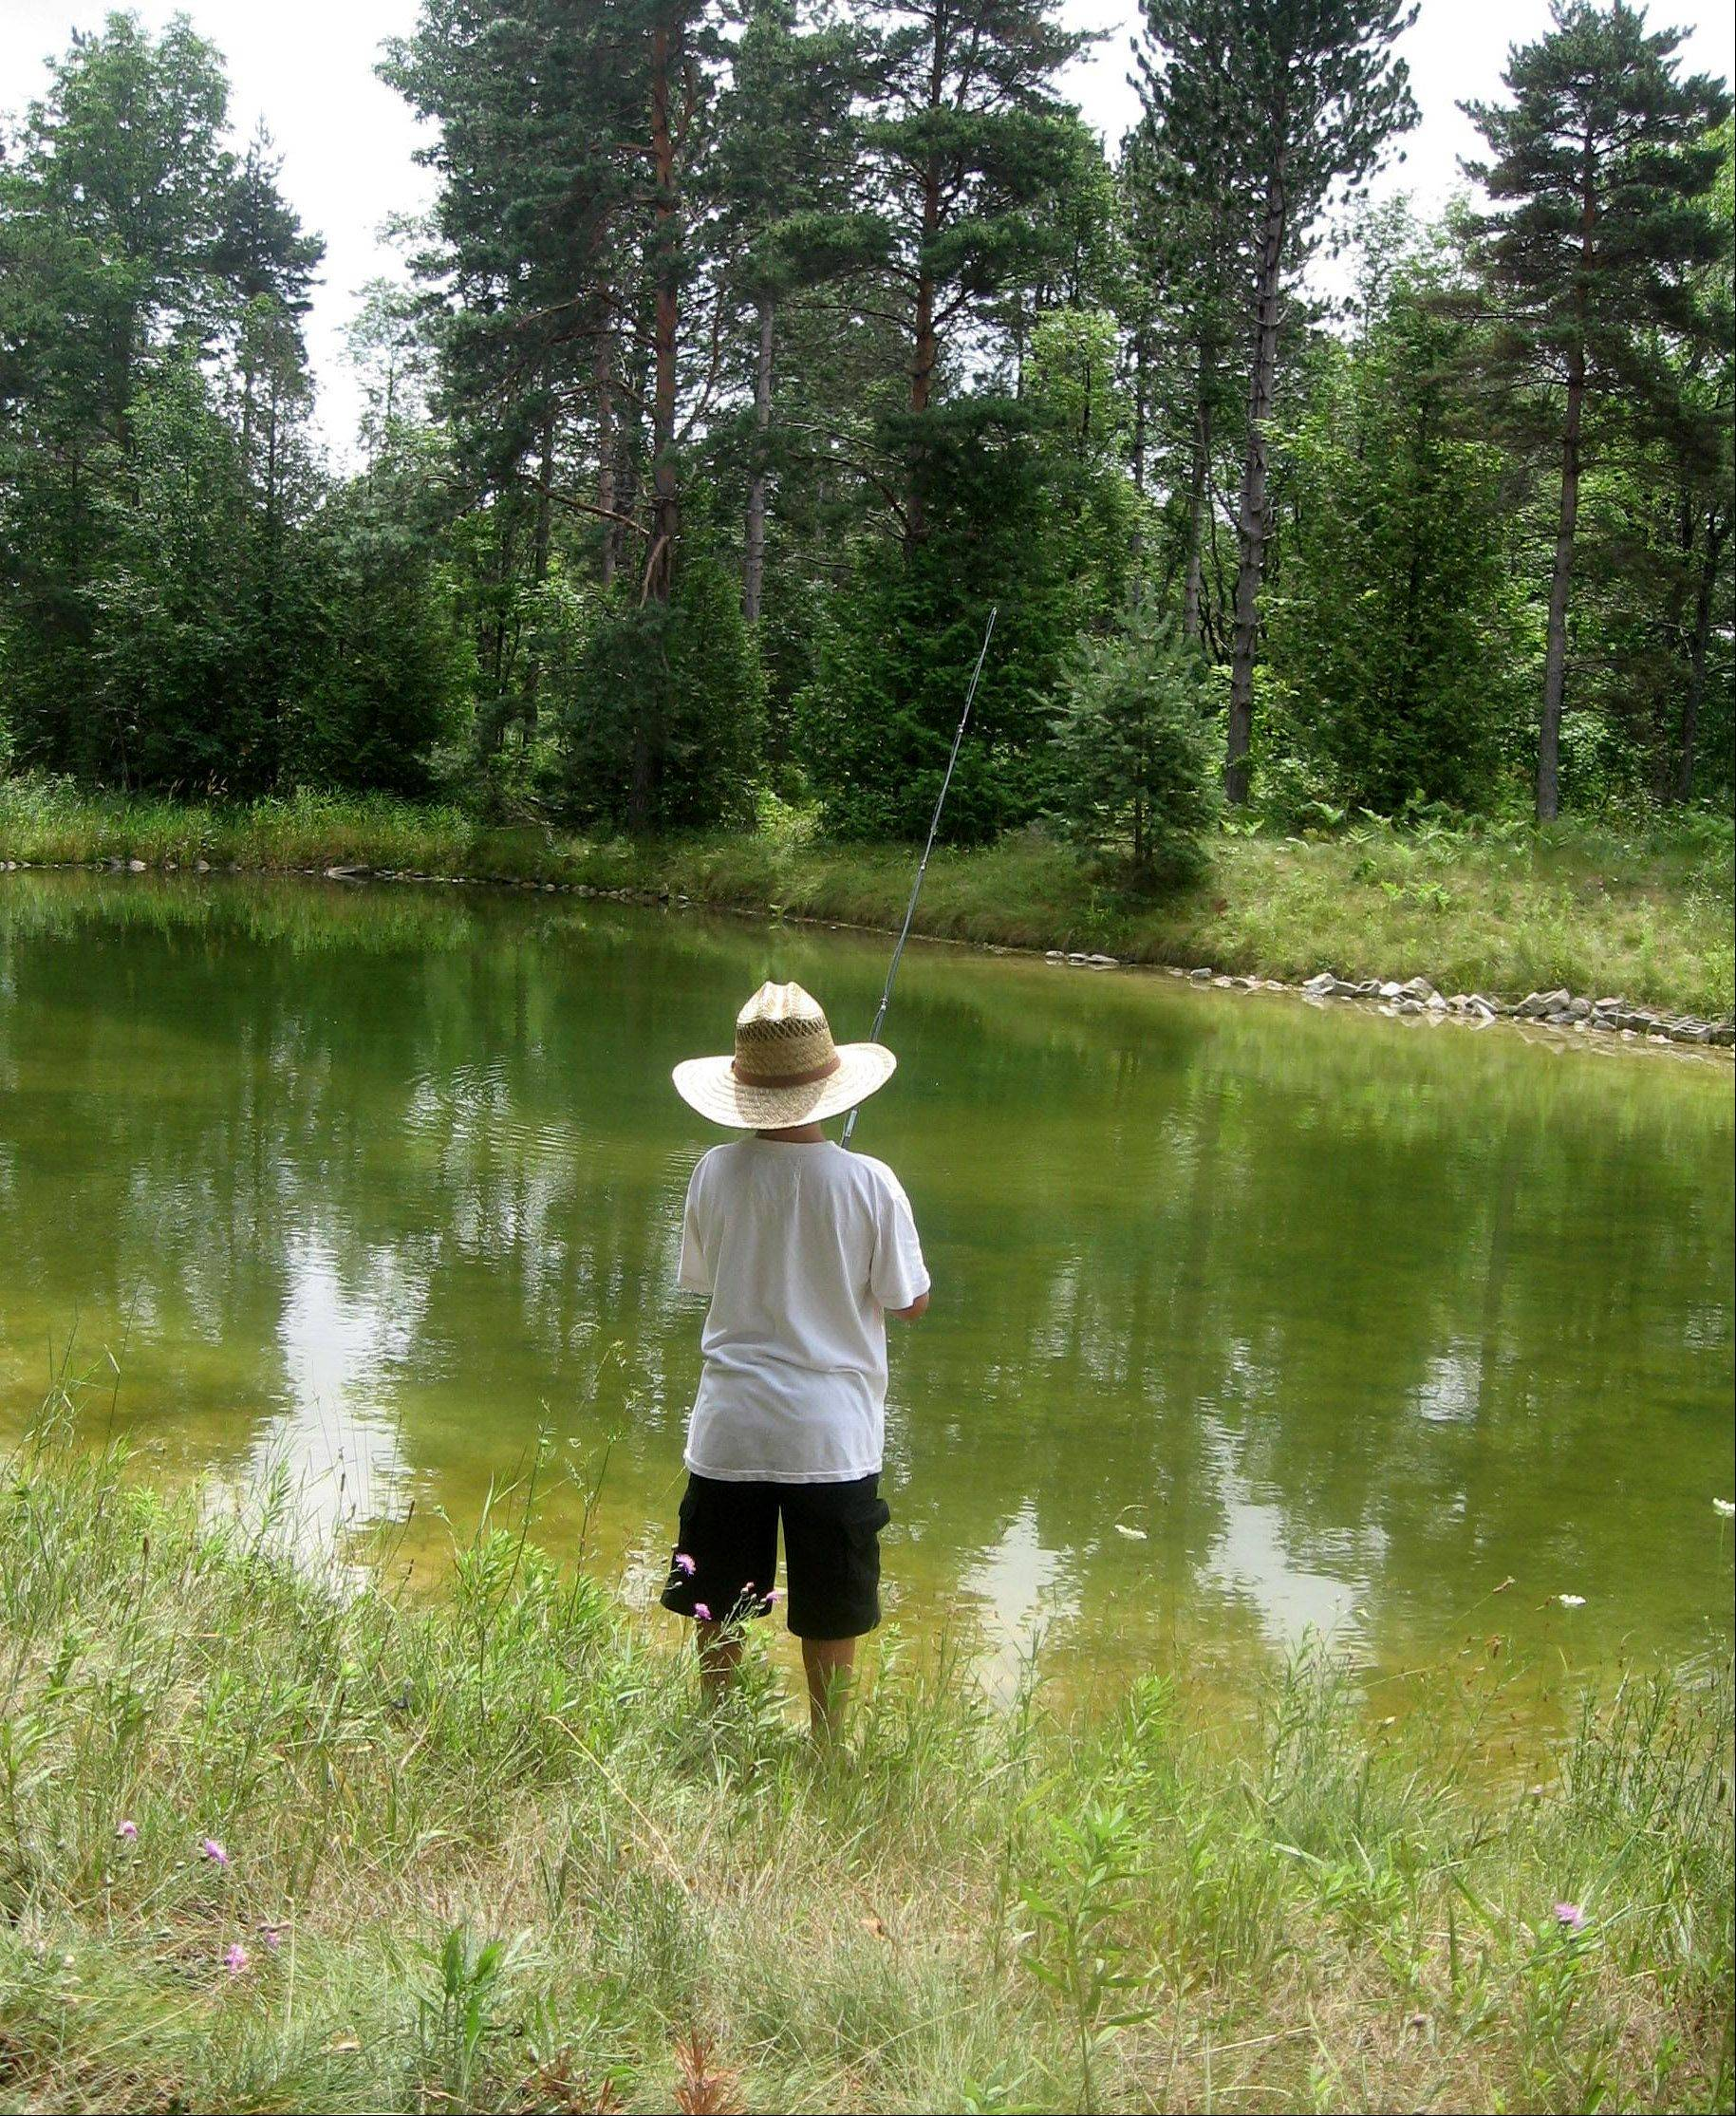 One of my favorite past times is to enjoy the outdoors, and to watch my son fish. This photo was taken at my Grandmother's farm in Petosky, Michigan.